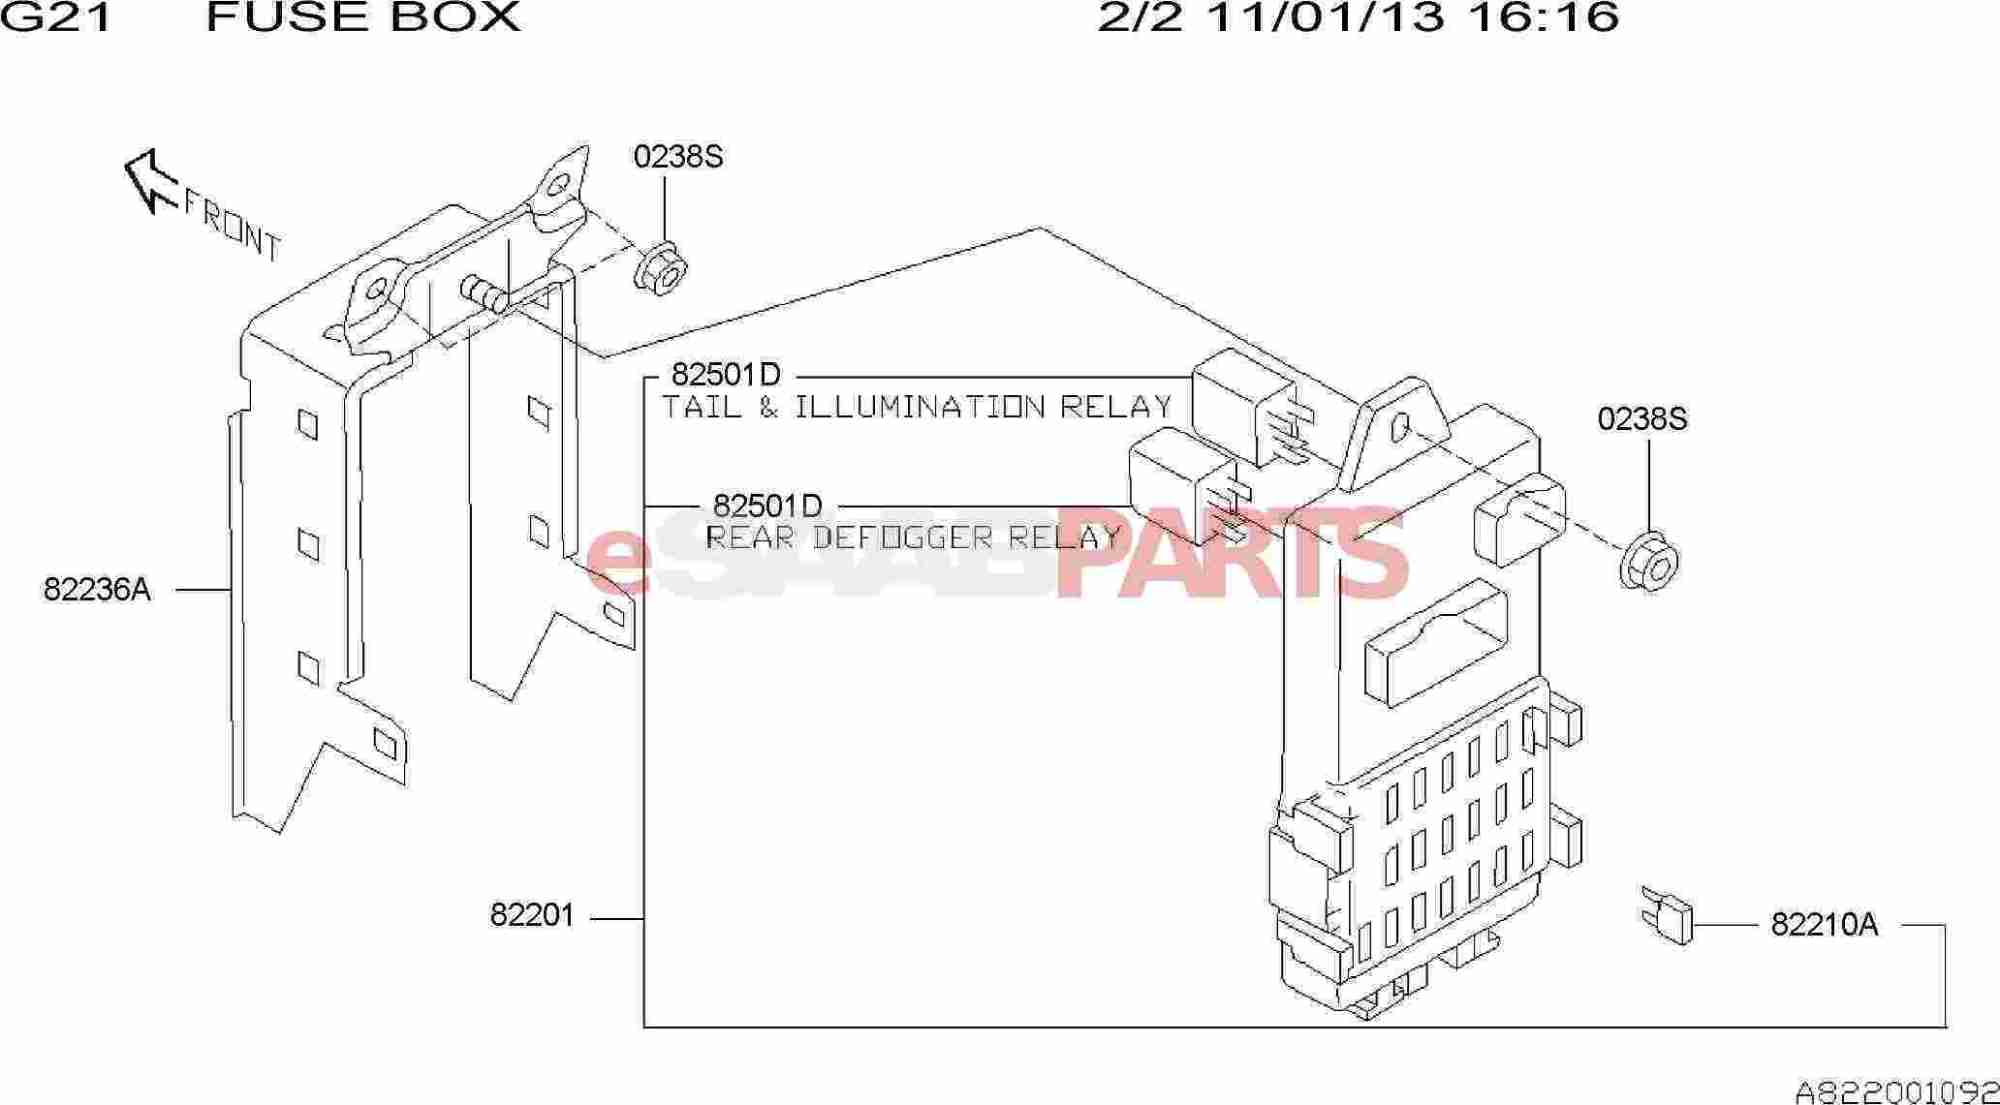 hight resolution of house fuse box parts wiring diagram database parts of a house fuse box house fuse box